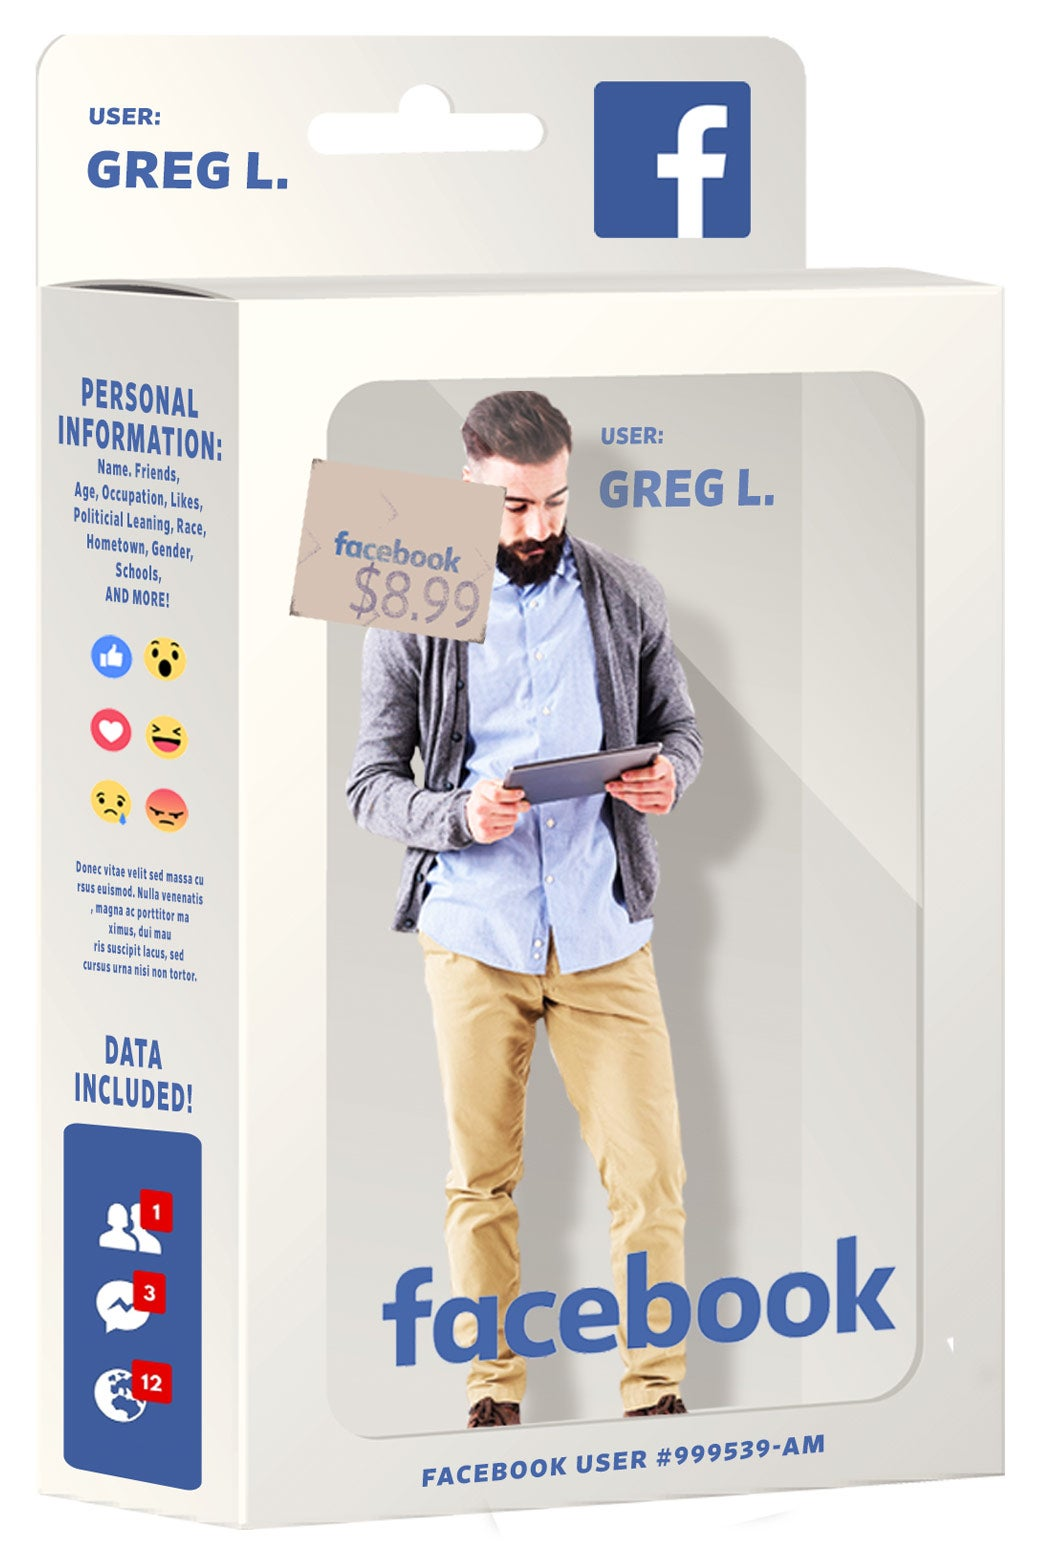 Man in Facebook product box.